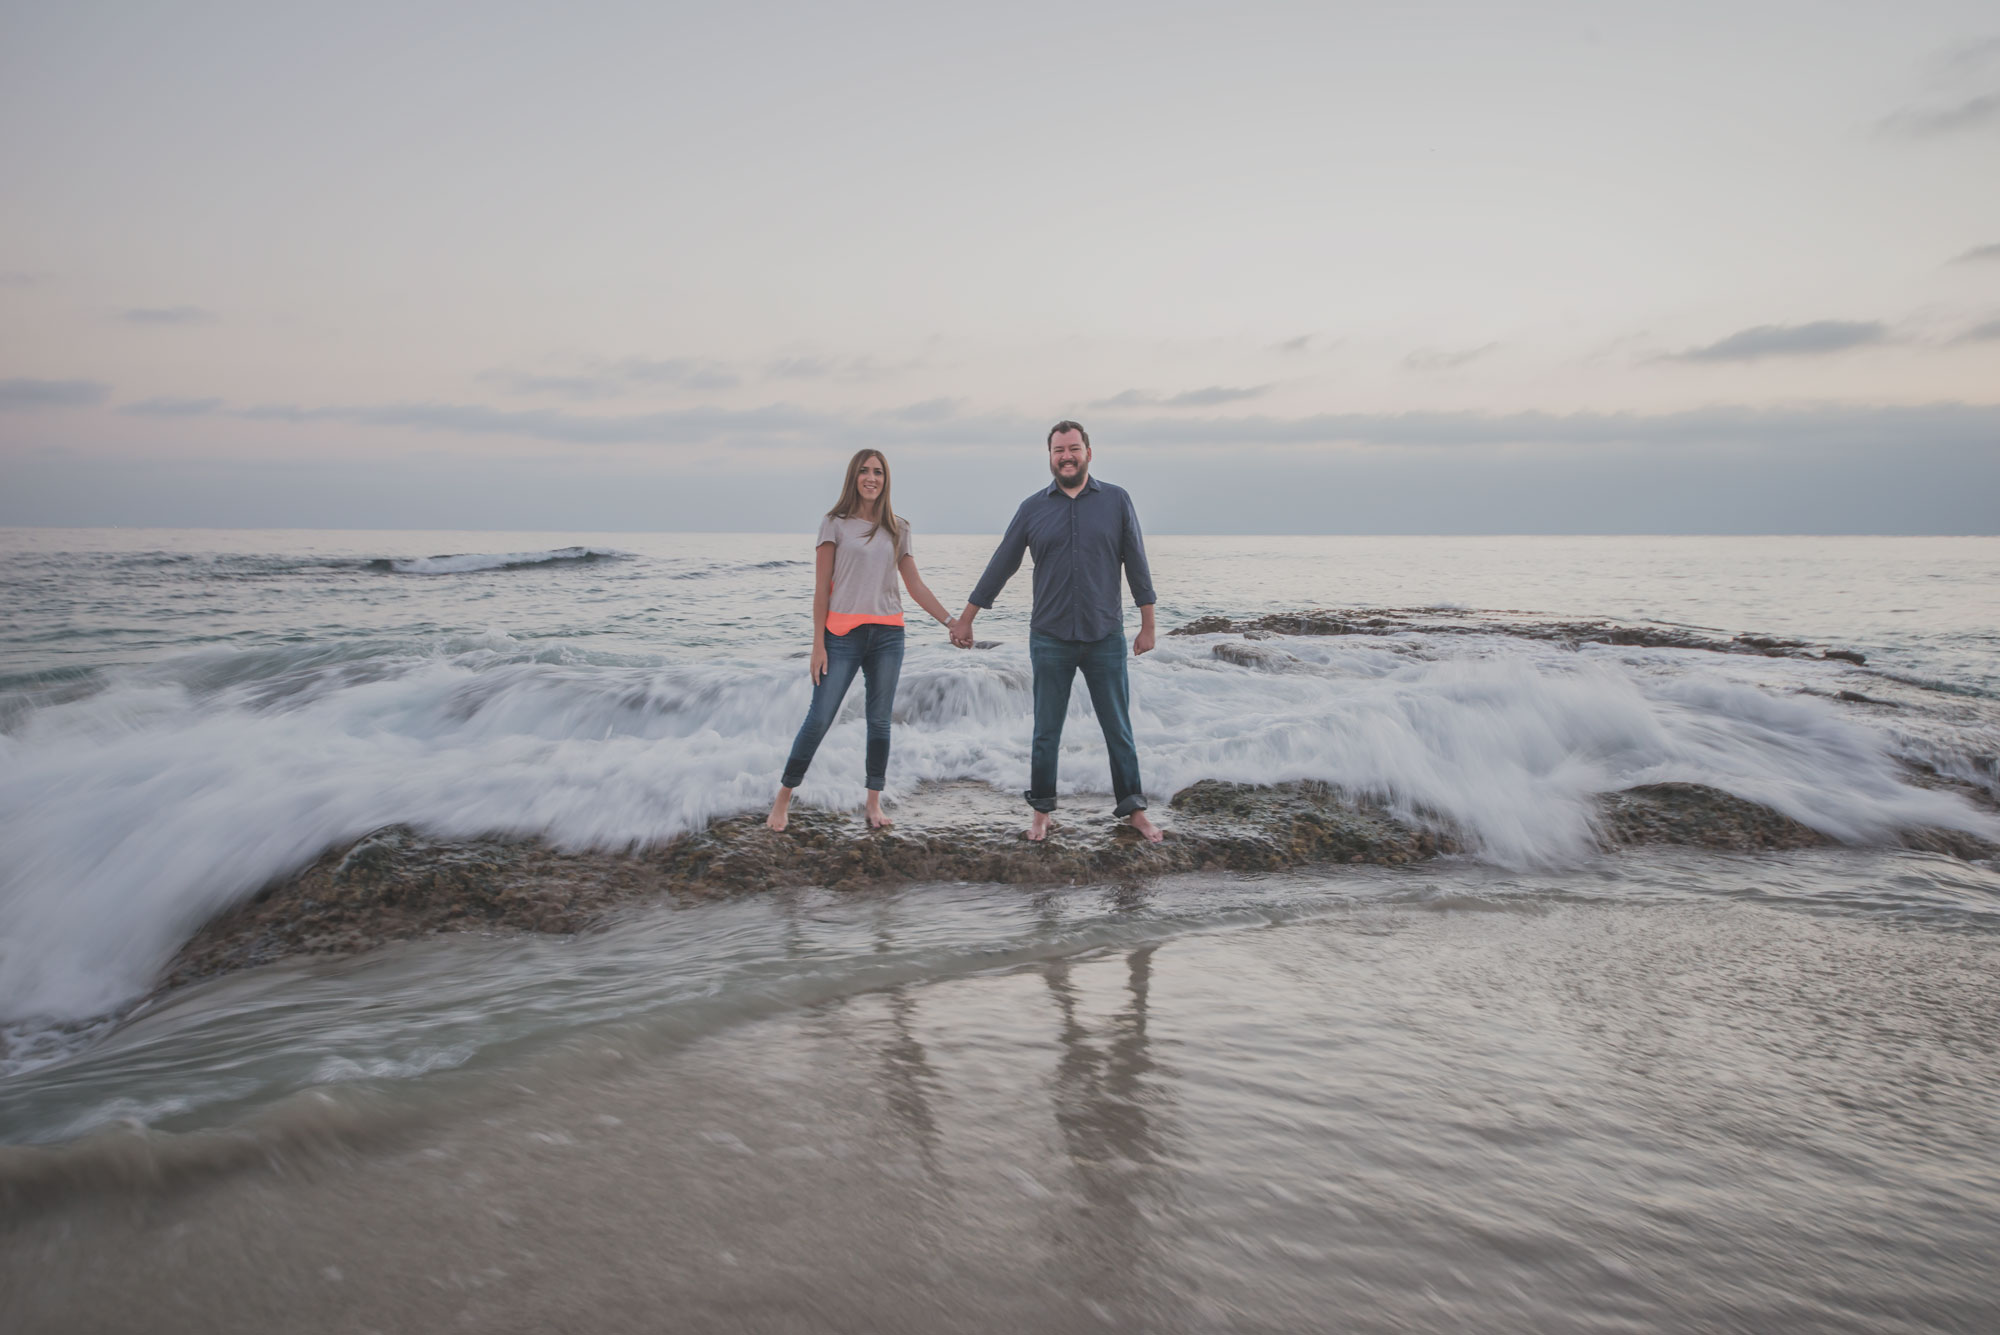 Lifestyle Photography | WindanSea La Jolla CA | Mel and Tim Photography